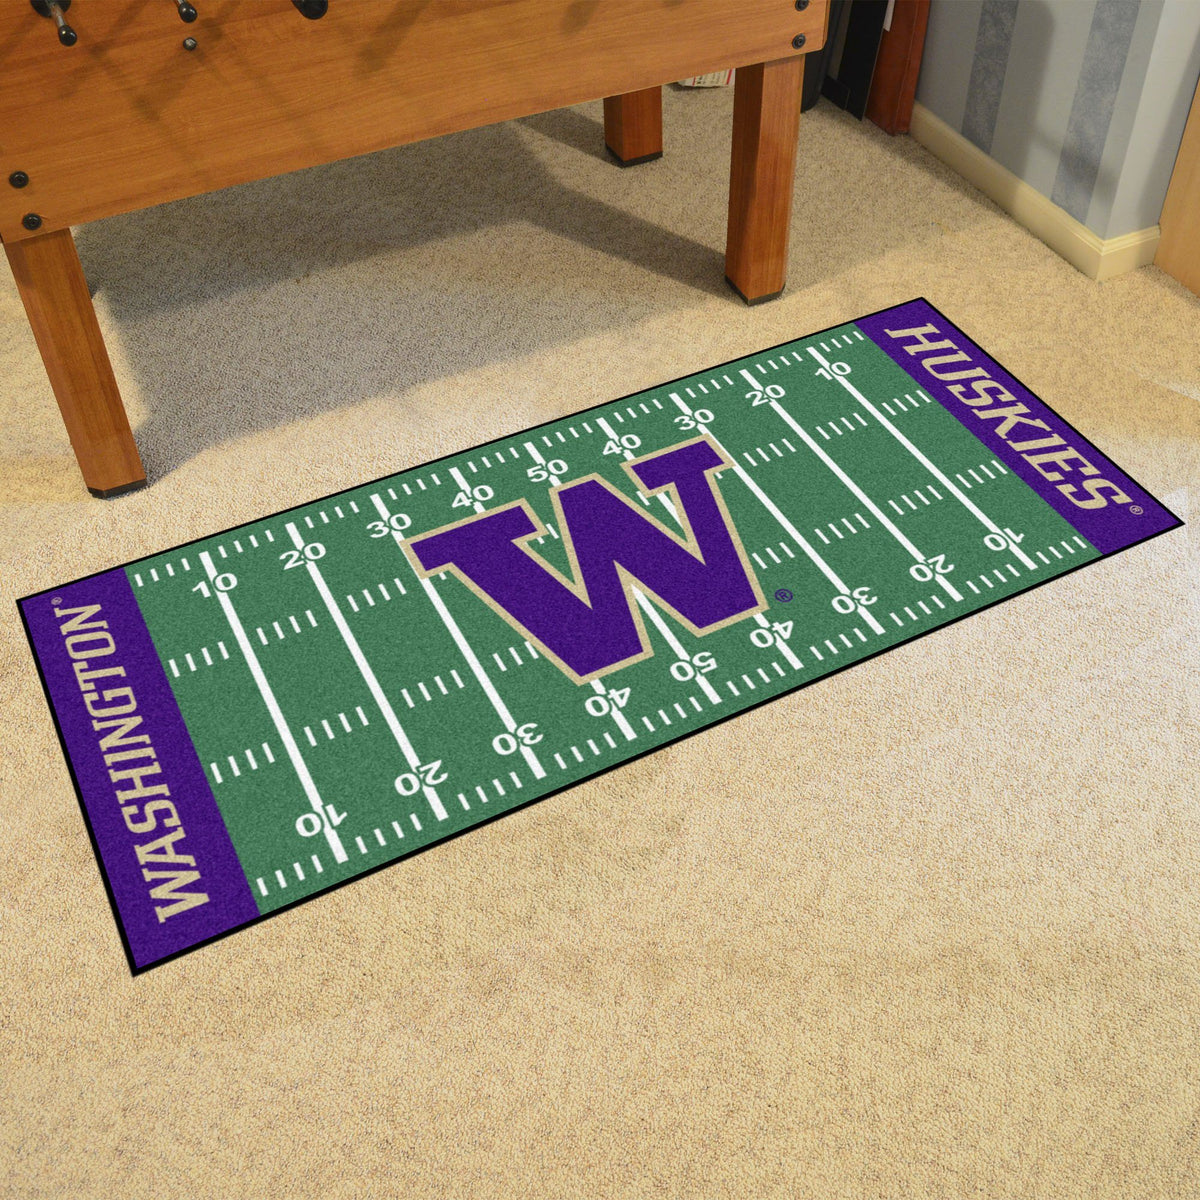 Collegiate - Football Field Runner Collegiate Mats, Rectangular Mats, Football Field Runner, Collegiate, Home Fan Mats Washington